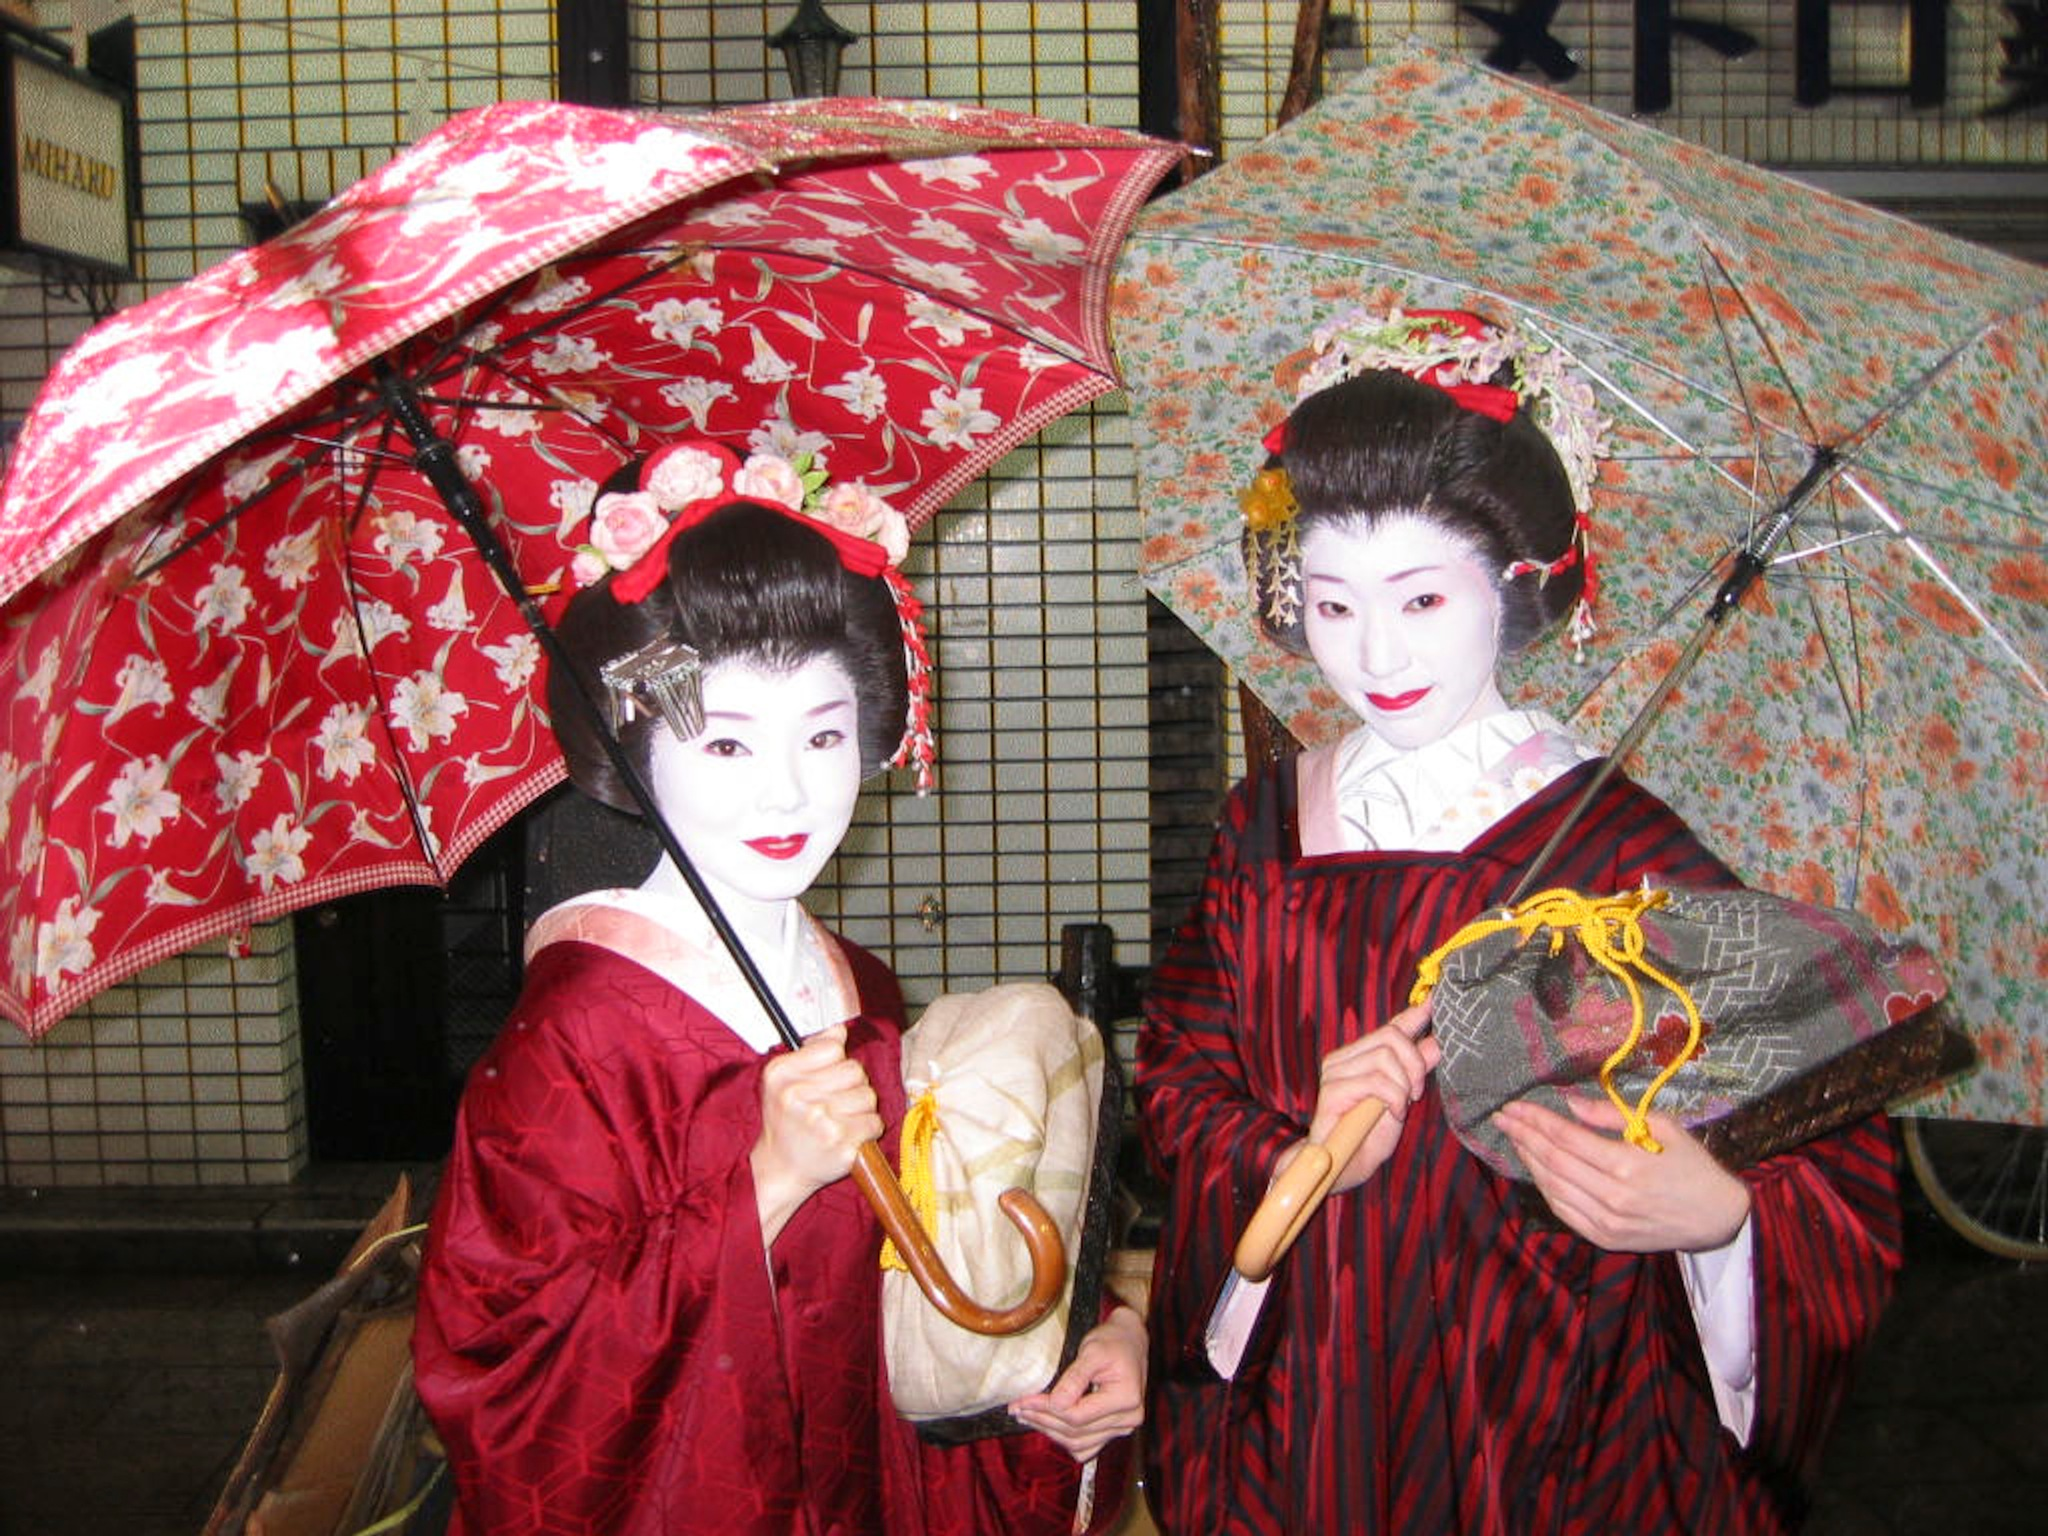 Geishas on a Tokyo Street at night by Miloliidrifter